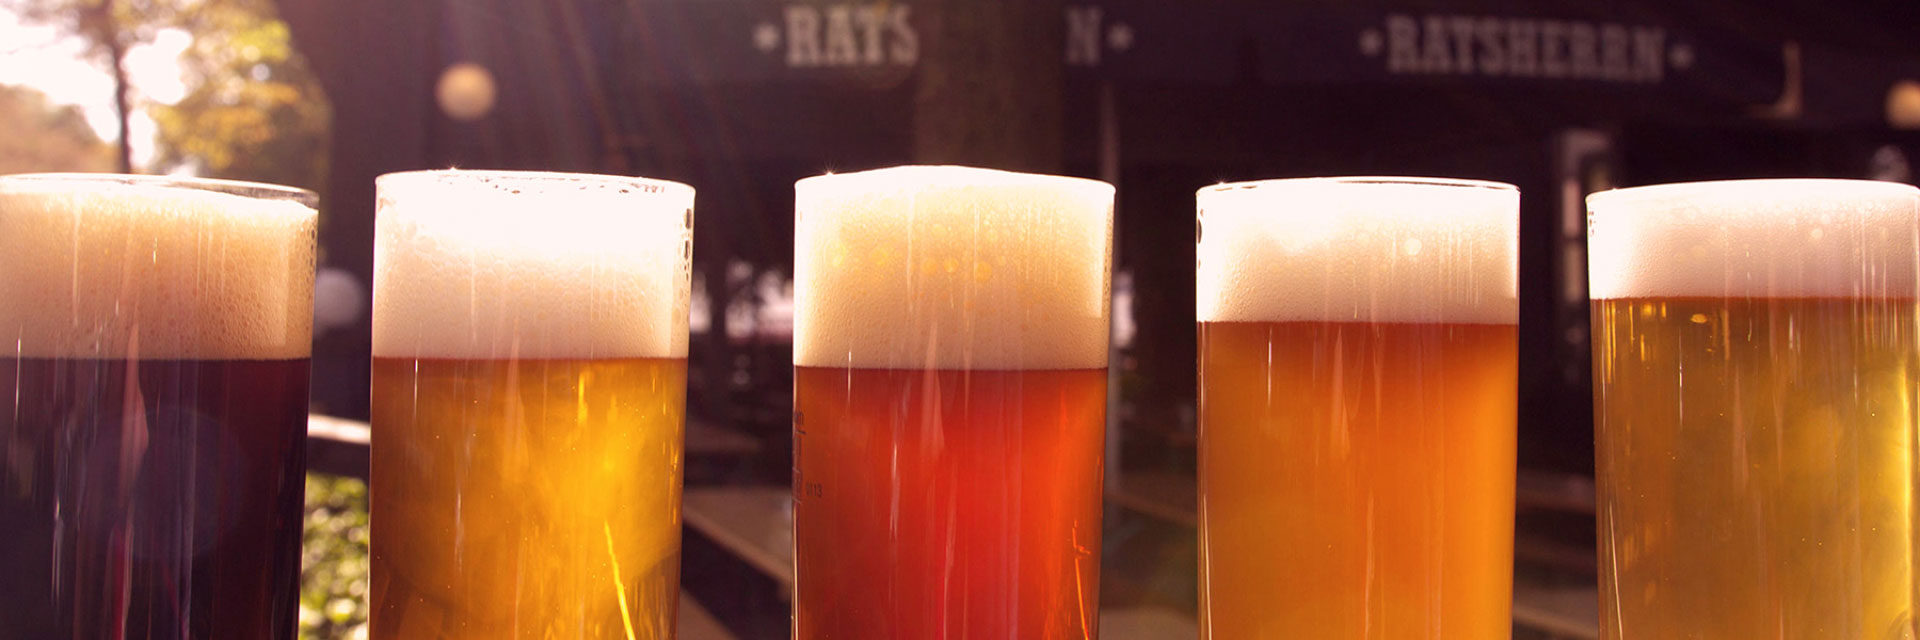 beer_21-1920x640_small